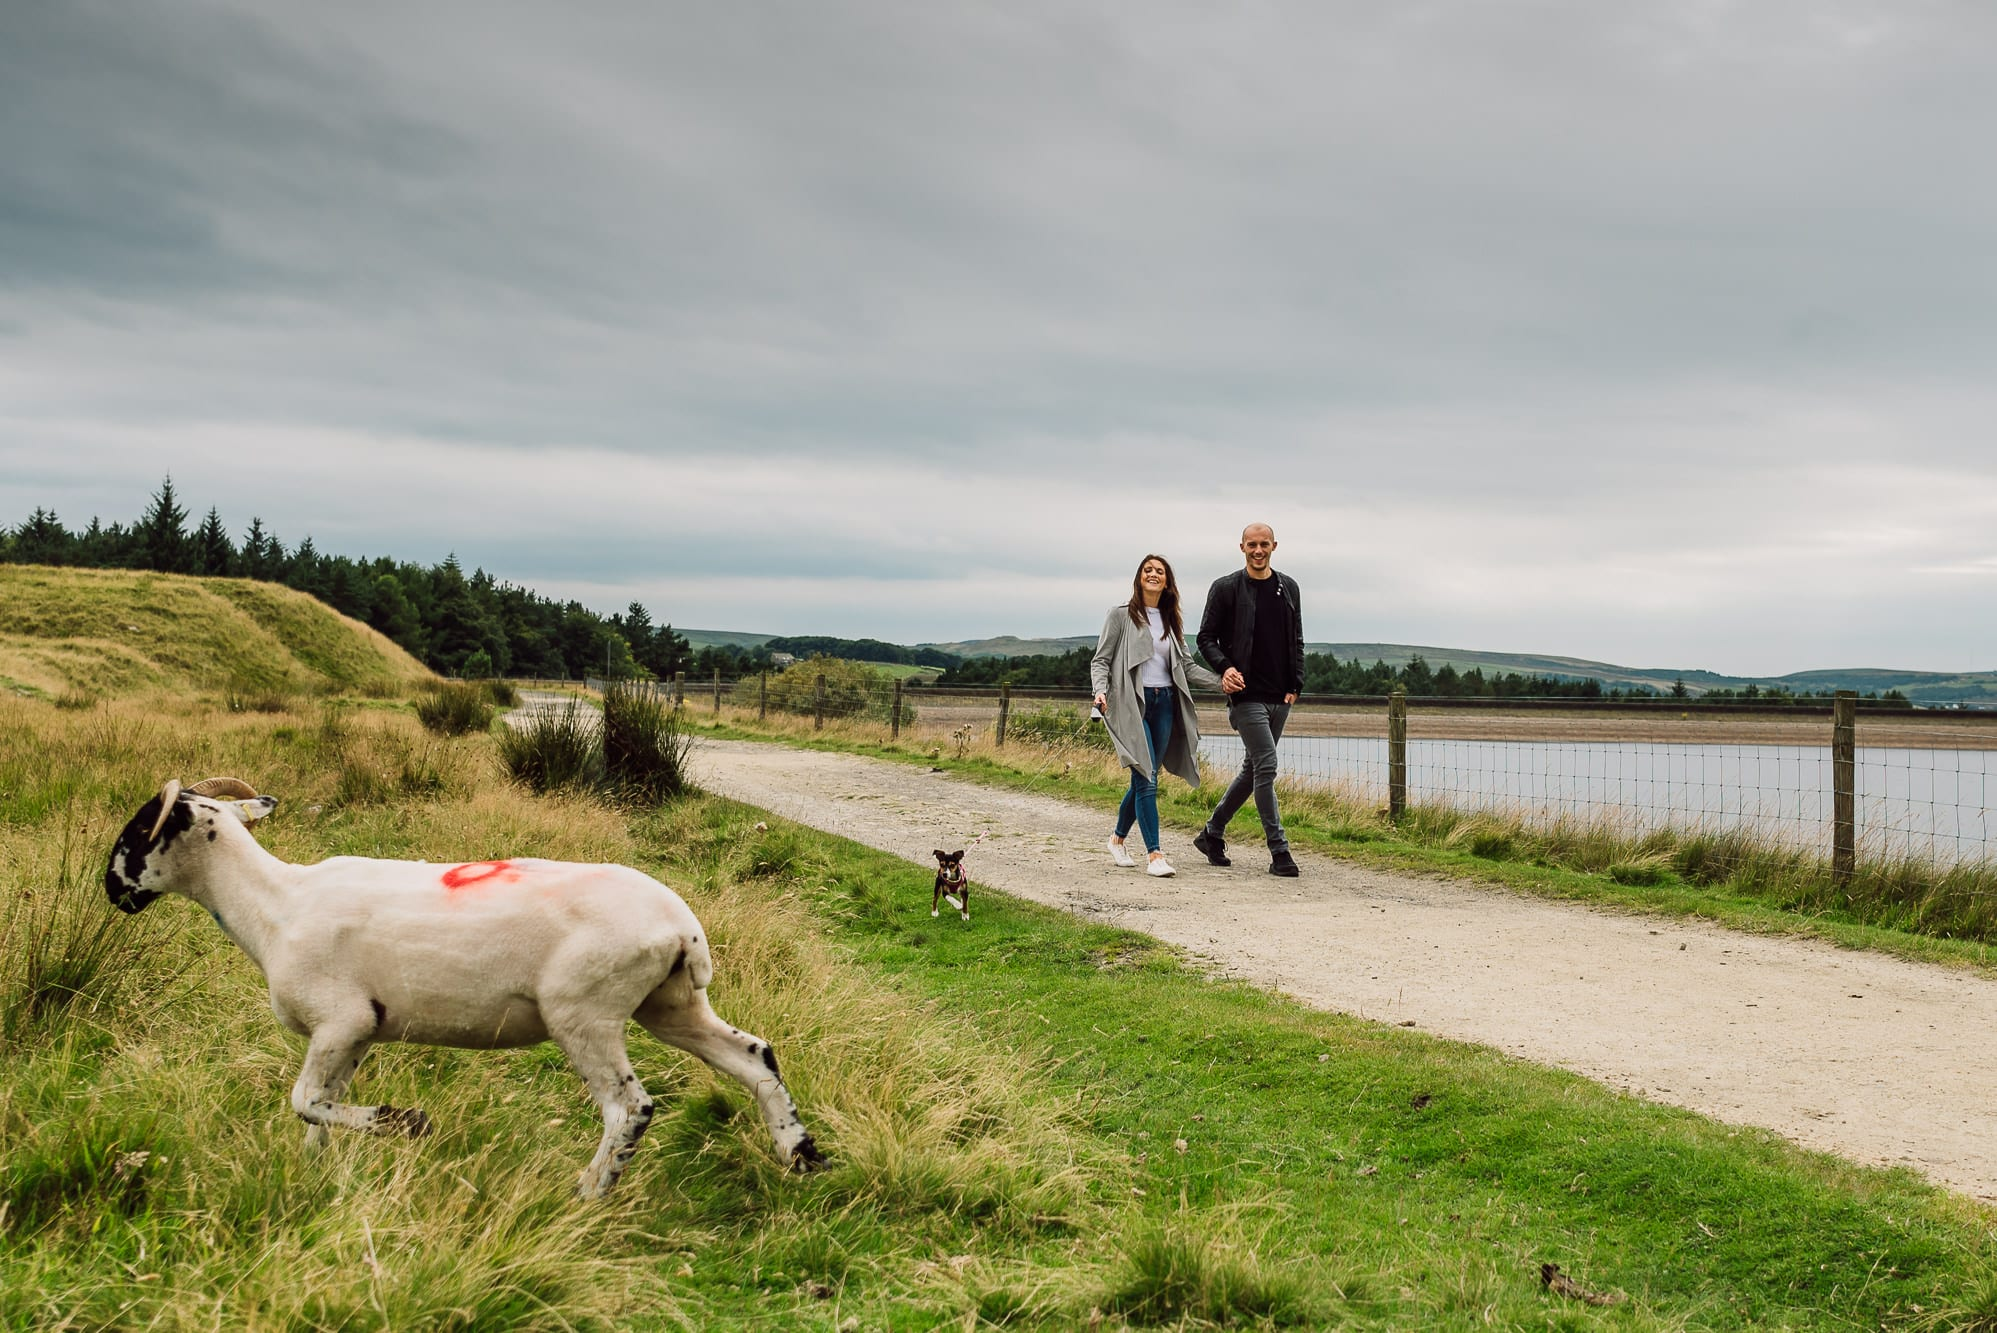 Close up to a sheep with couple walking behind